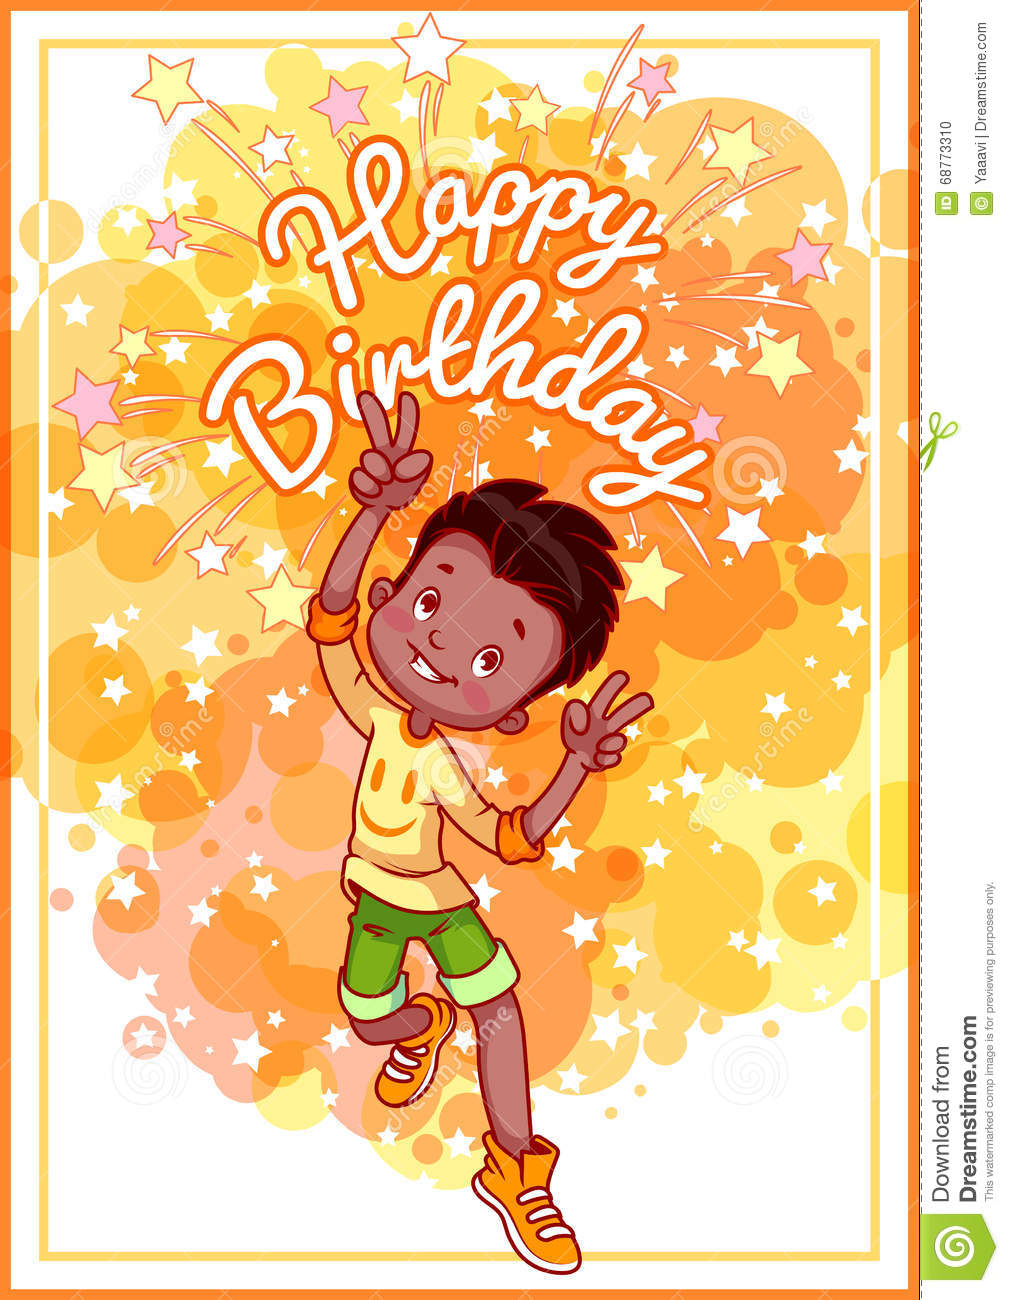 american birthday greeting cards ; greeting-card-birthday-happy-african-american-boy-vector-template-postcard-yellow-tones-68773310